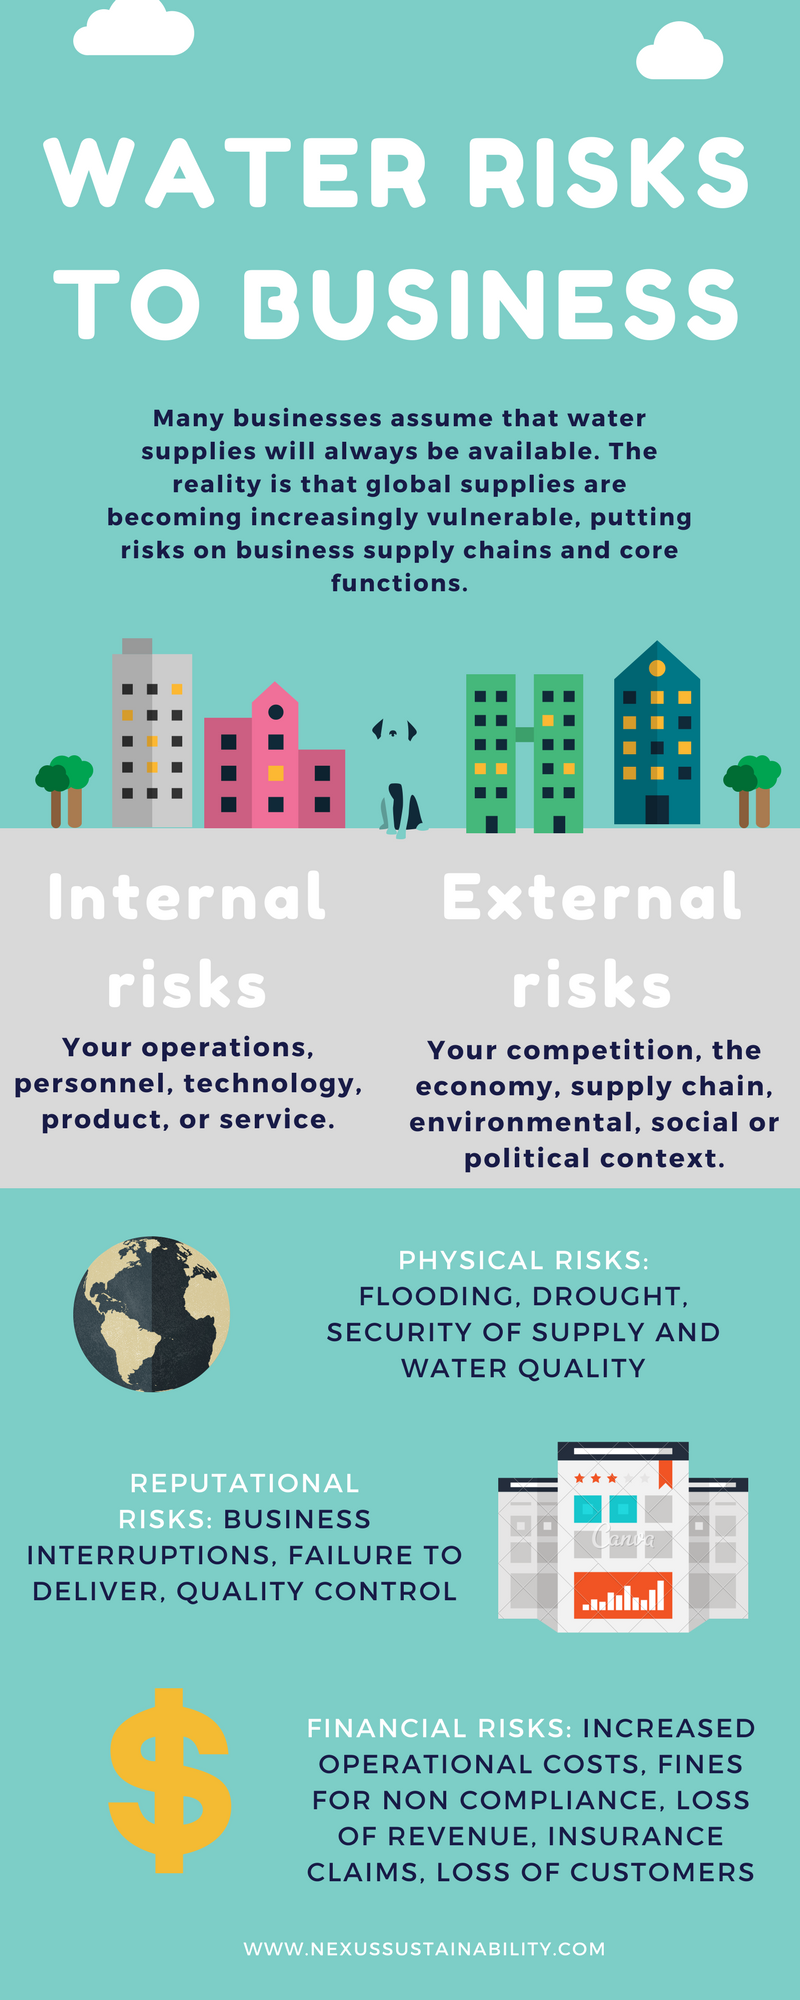 Water-risk infographic